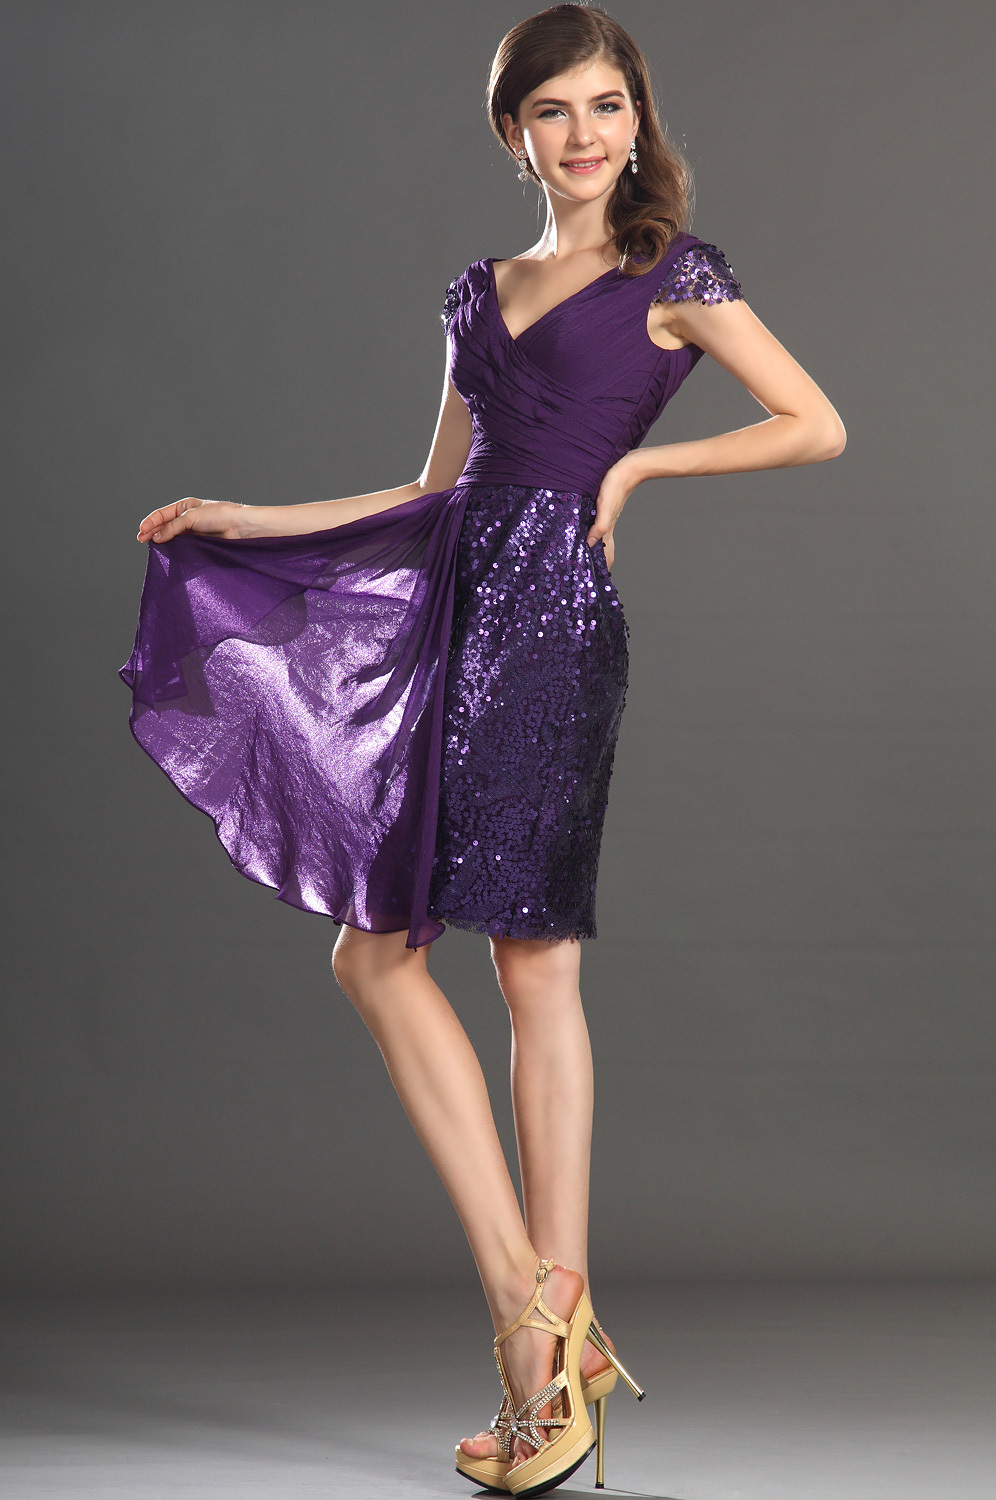 Metallic Purple Dress And Oscar Fashion Review Dresses Ask